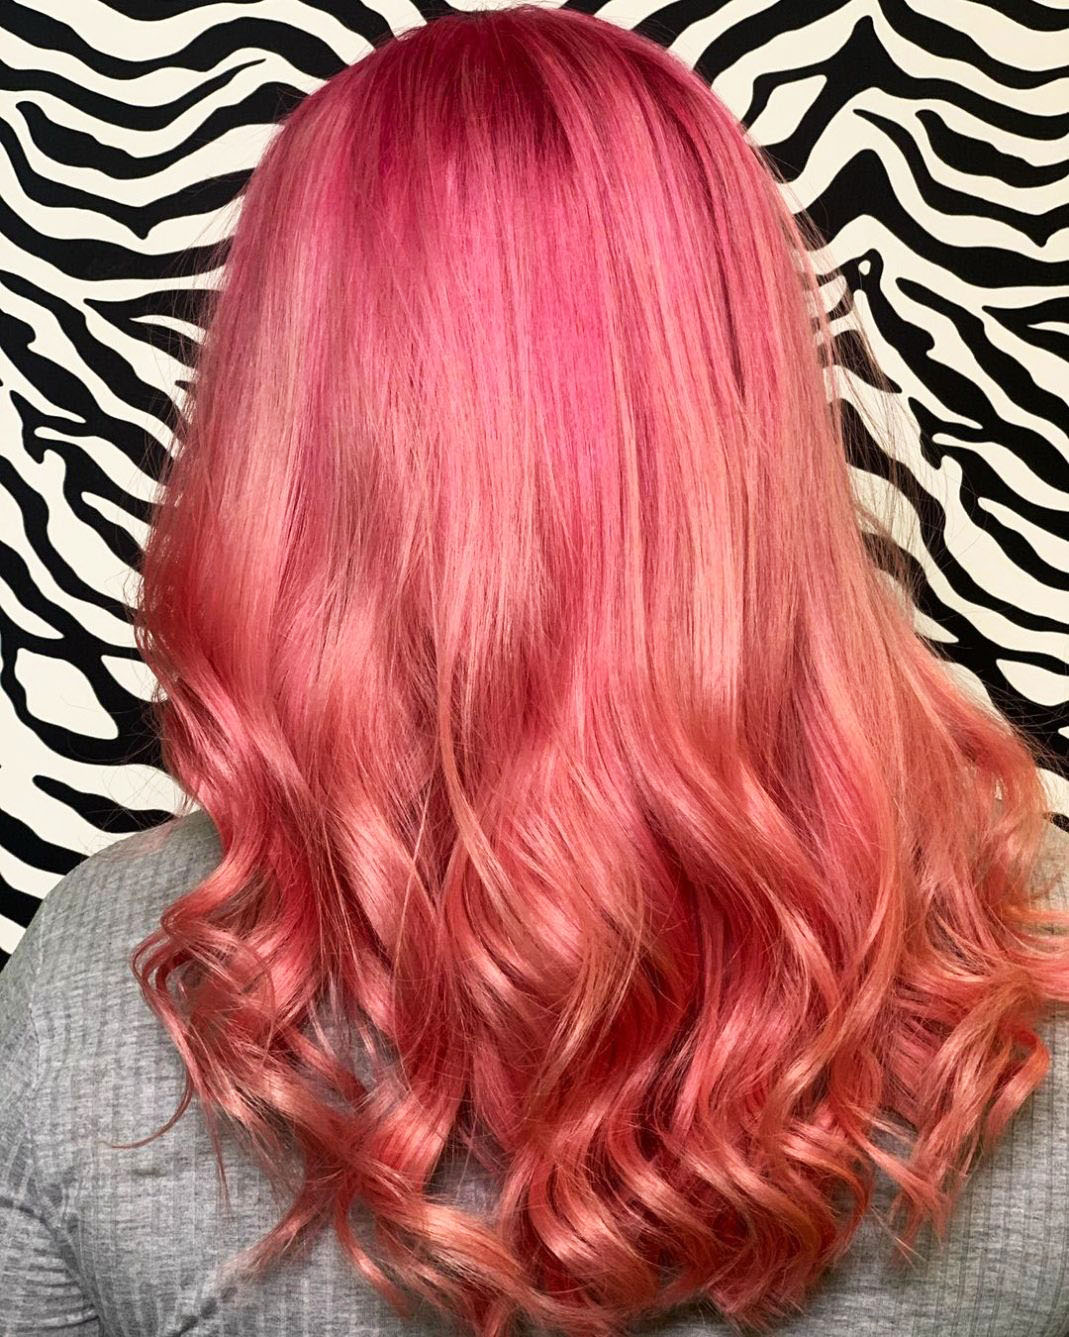 Pink hair a full palette of pink shades and coloring features 12 26